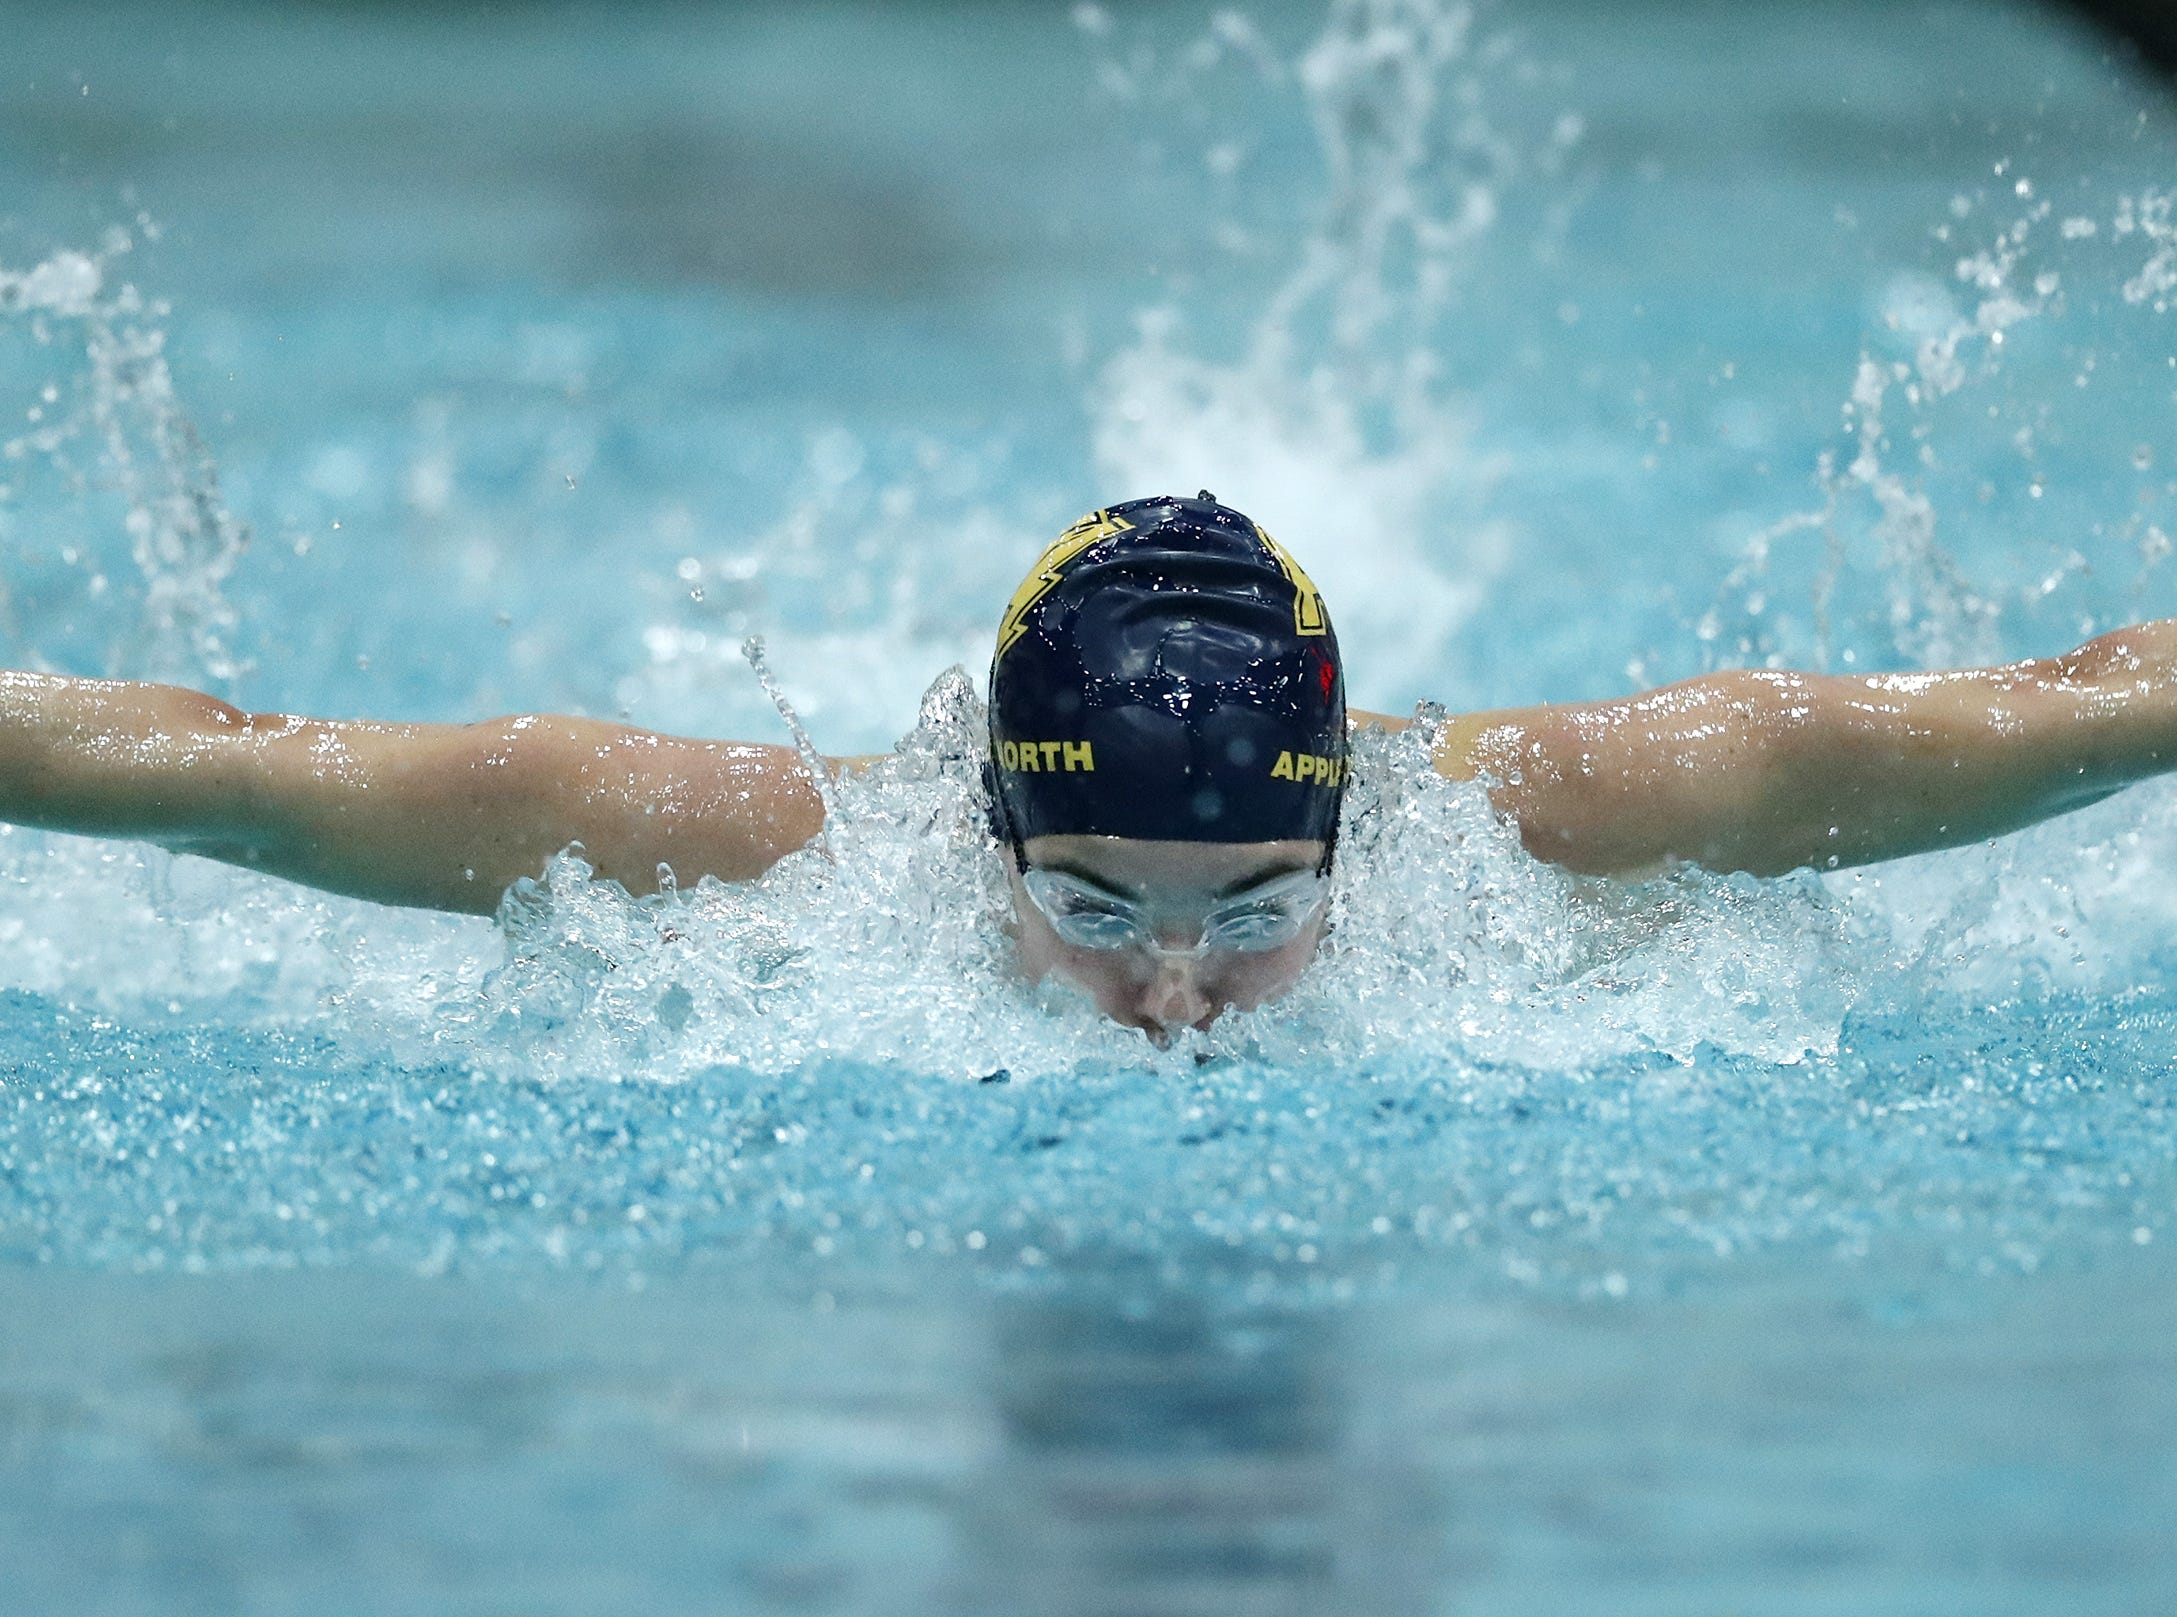 Appleton NorthÕs Mollie Brackett races in the 100 yard butterfly during the WIAA Division 1 State Swimming and Diving meet Saturday, Nov. 10, 2018, at the UW Natatorium in Madison, Wis. Danny Damiani/USA TODAY NETWORK-Wisconsin